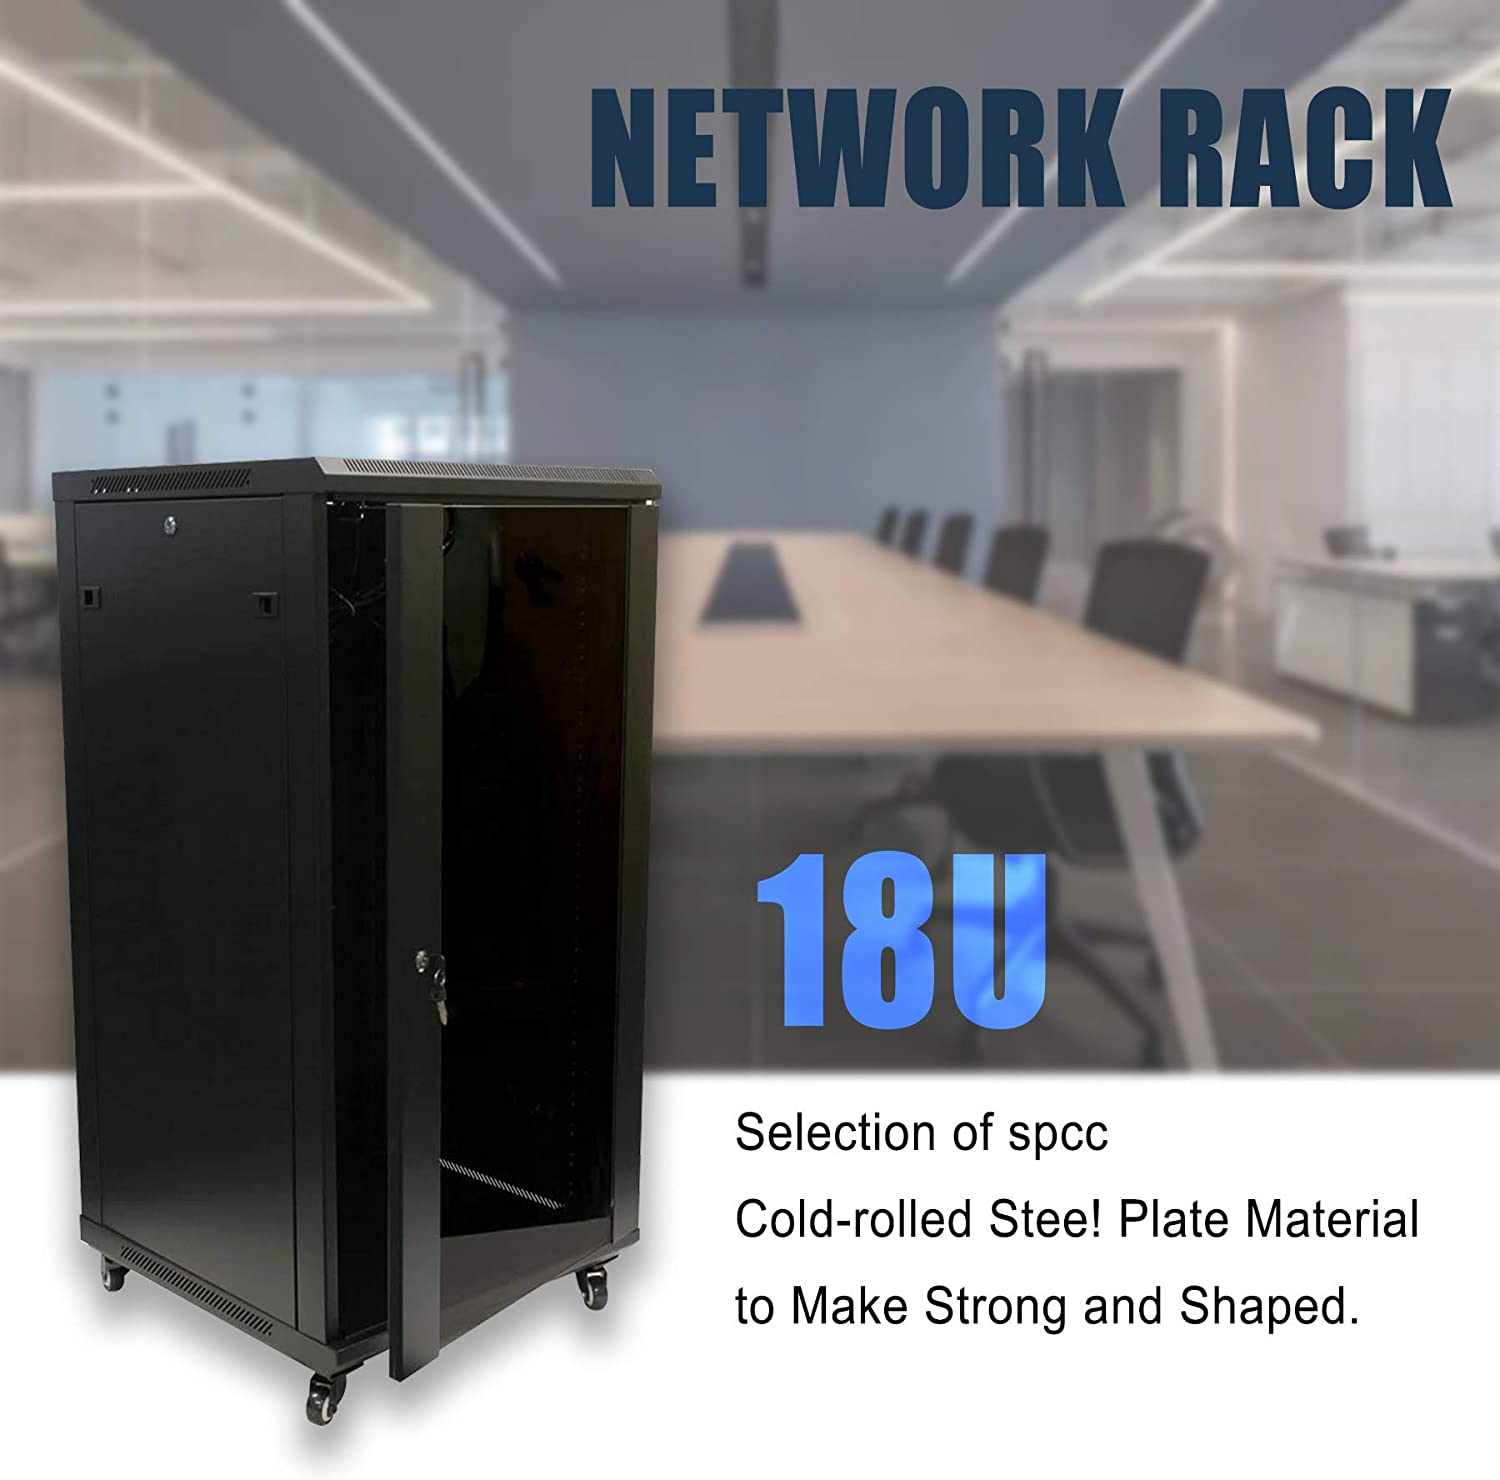 1 Set of 18U Network Server Data Cabinet Black Rack Glass Door Lock(Casters Included),Apply to Network Wiring Room,Computer Room,Data Room,Control Center,Home,Office,etc.